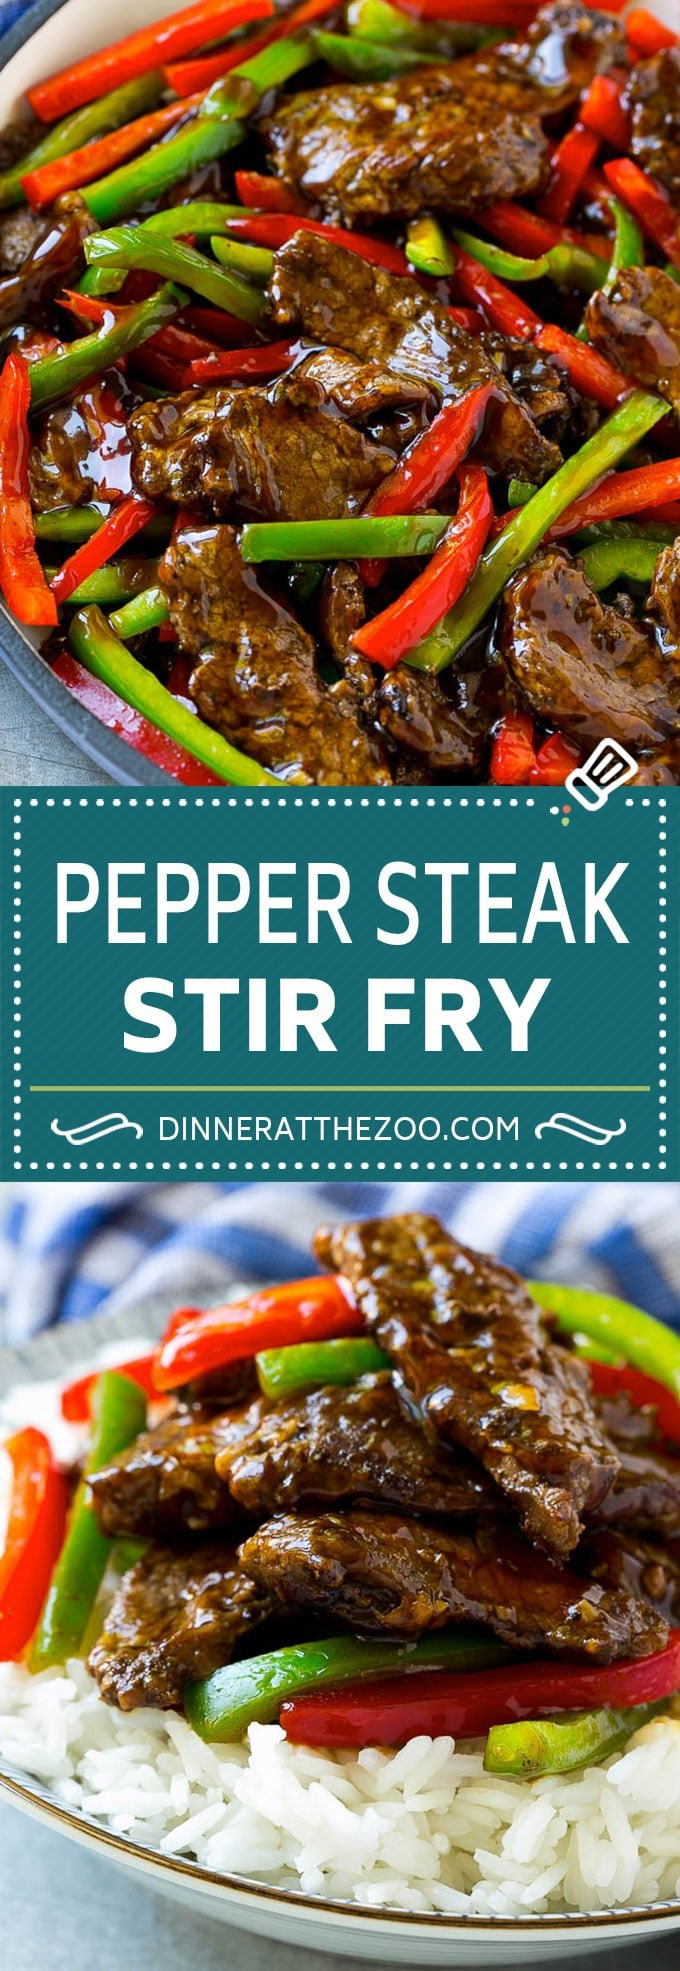 Pepper Steak Stir Fry Recipe | Chinese Pepper Steak | Steak Stir Fry | Beef Stir Fry #steak #peppers #stirfry #chinesefood #dinneratthezoo #beef